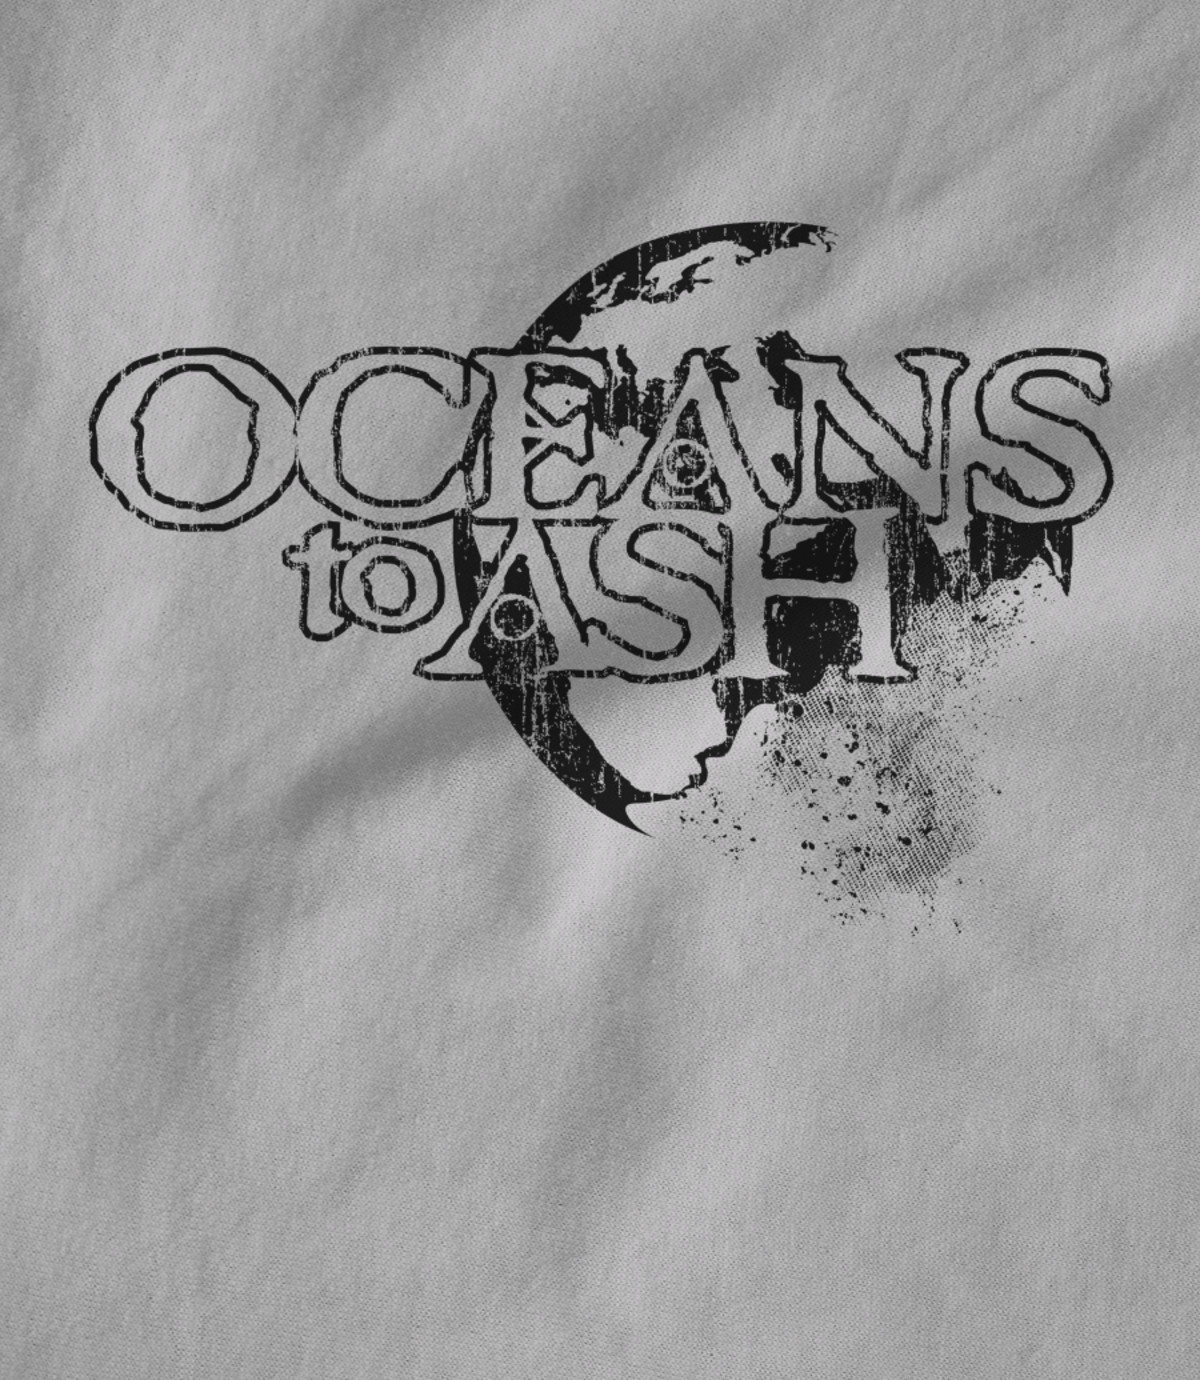 Oceans to ash oceans to ash   moon   white 1539366086